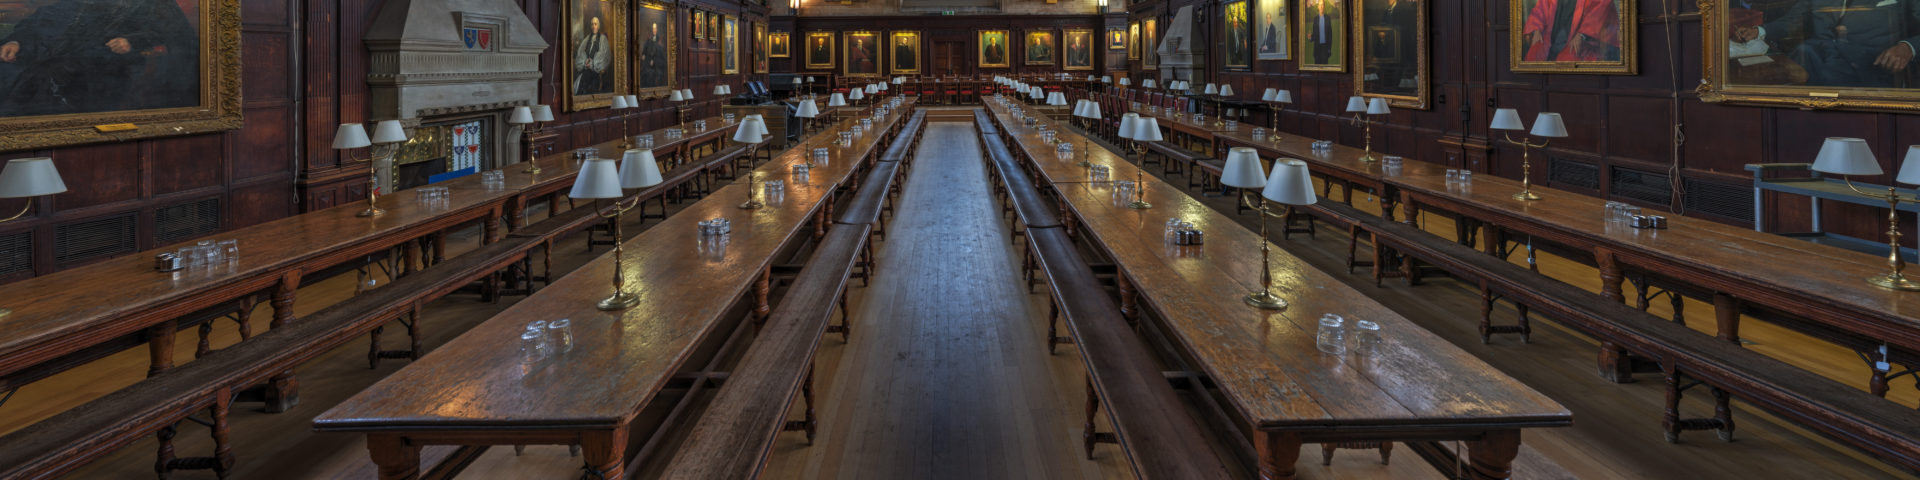 Oxford Balliol College Dining Hall